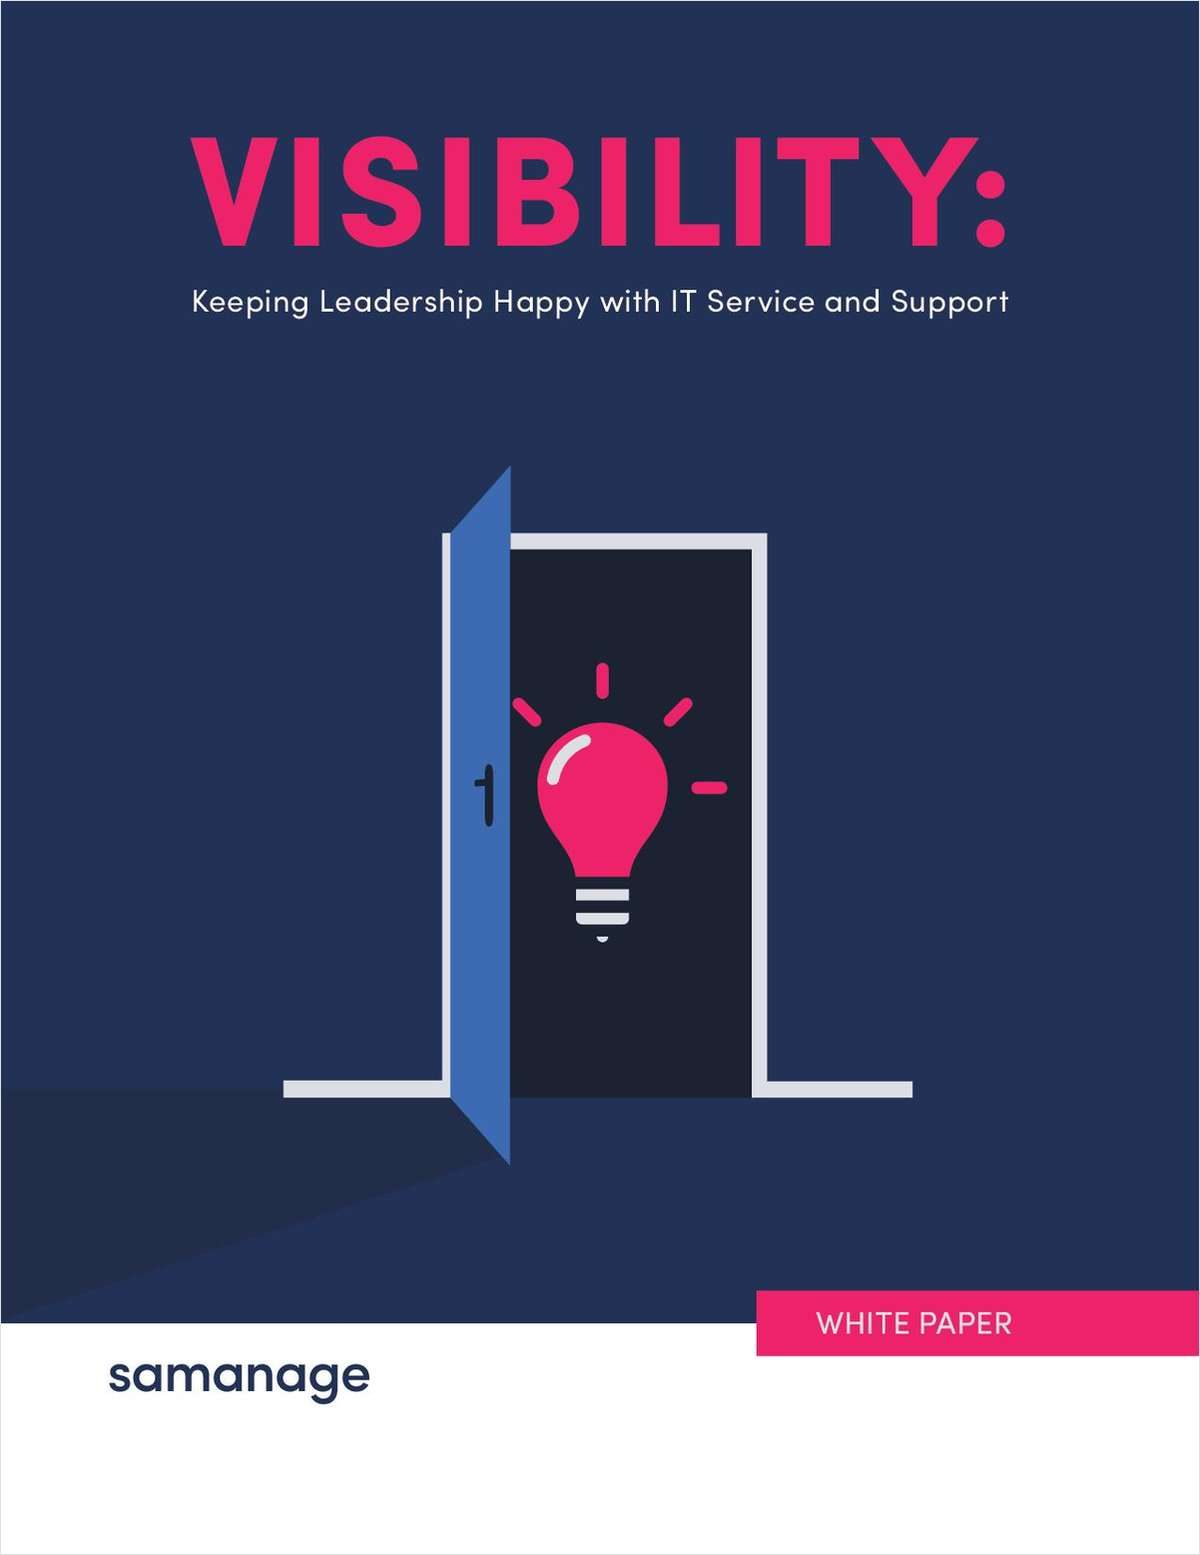 Visibility: Keeping Leadership Happy with IT Service and Support